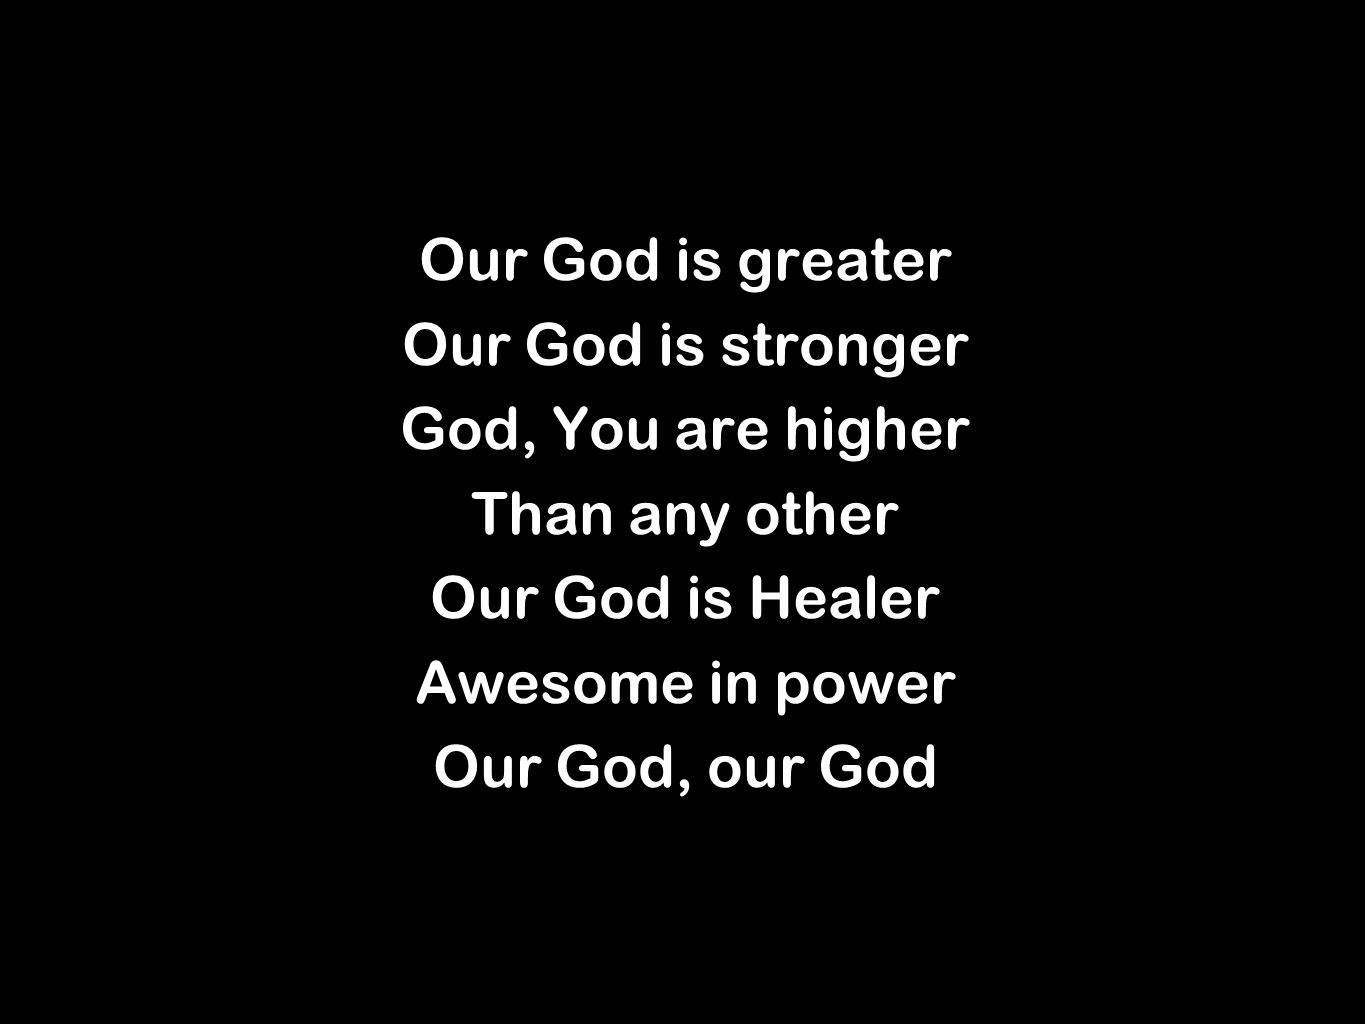 Our God is greater Our God is stronger God, You are higher Than any other Our God is Healer Awesome in power Our God, our God Our God is greater Our God is stronger God, You are higher Than any other Our God is Healer Awesome in power Our God, our God